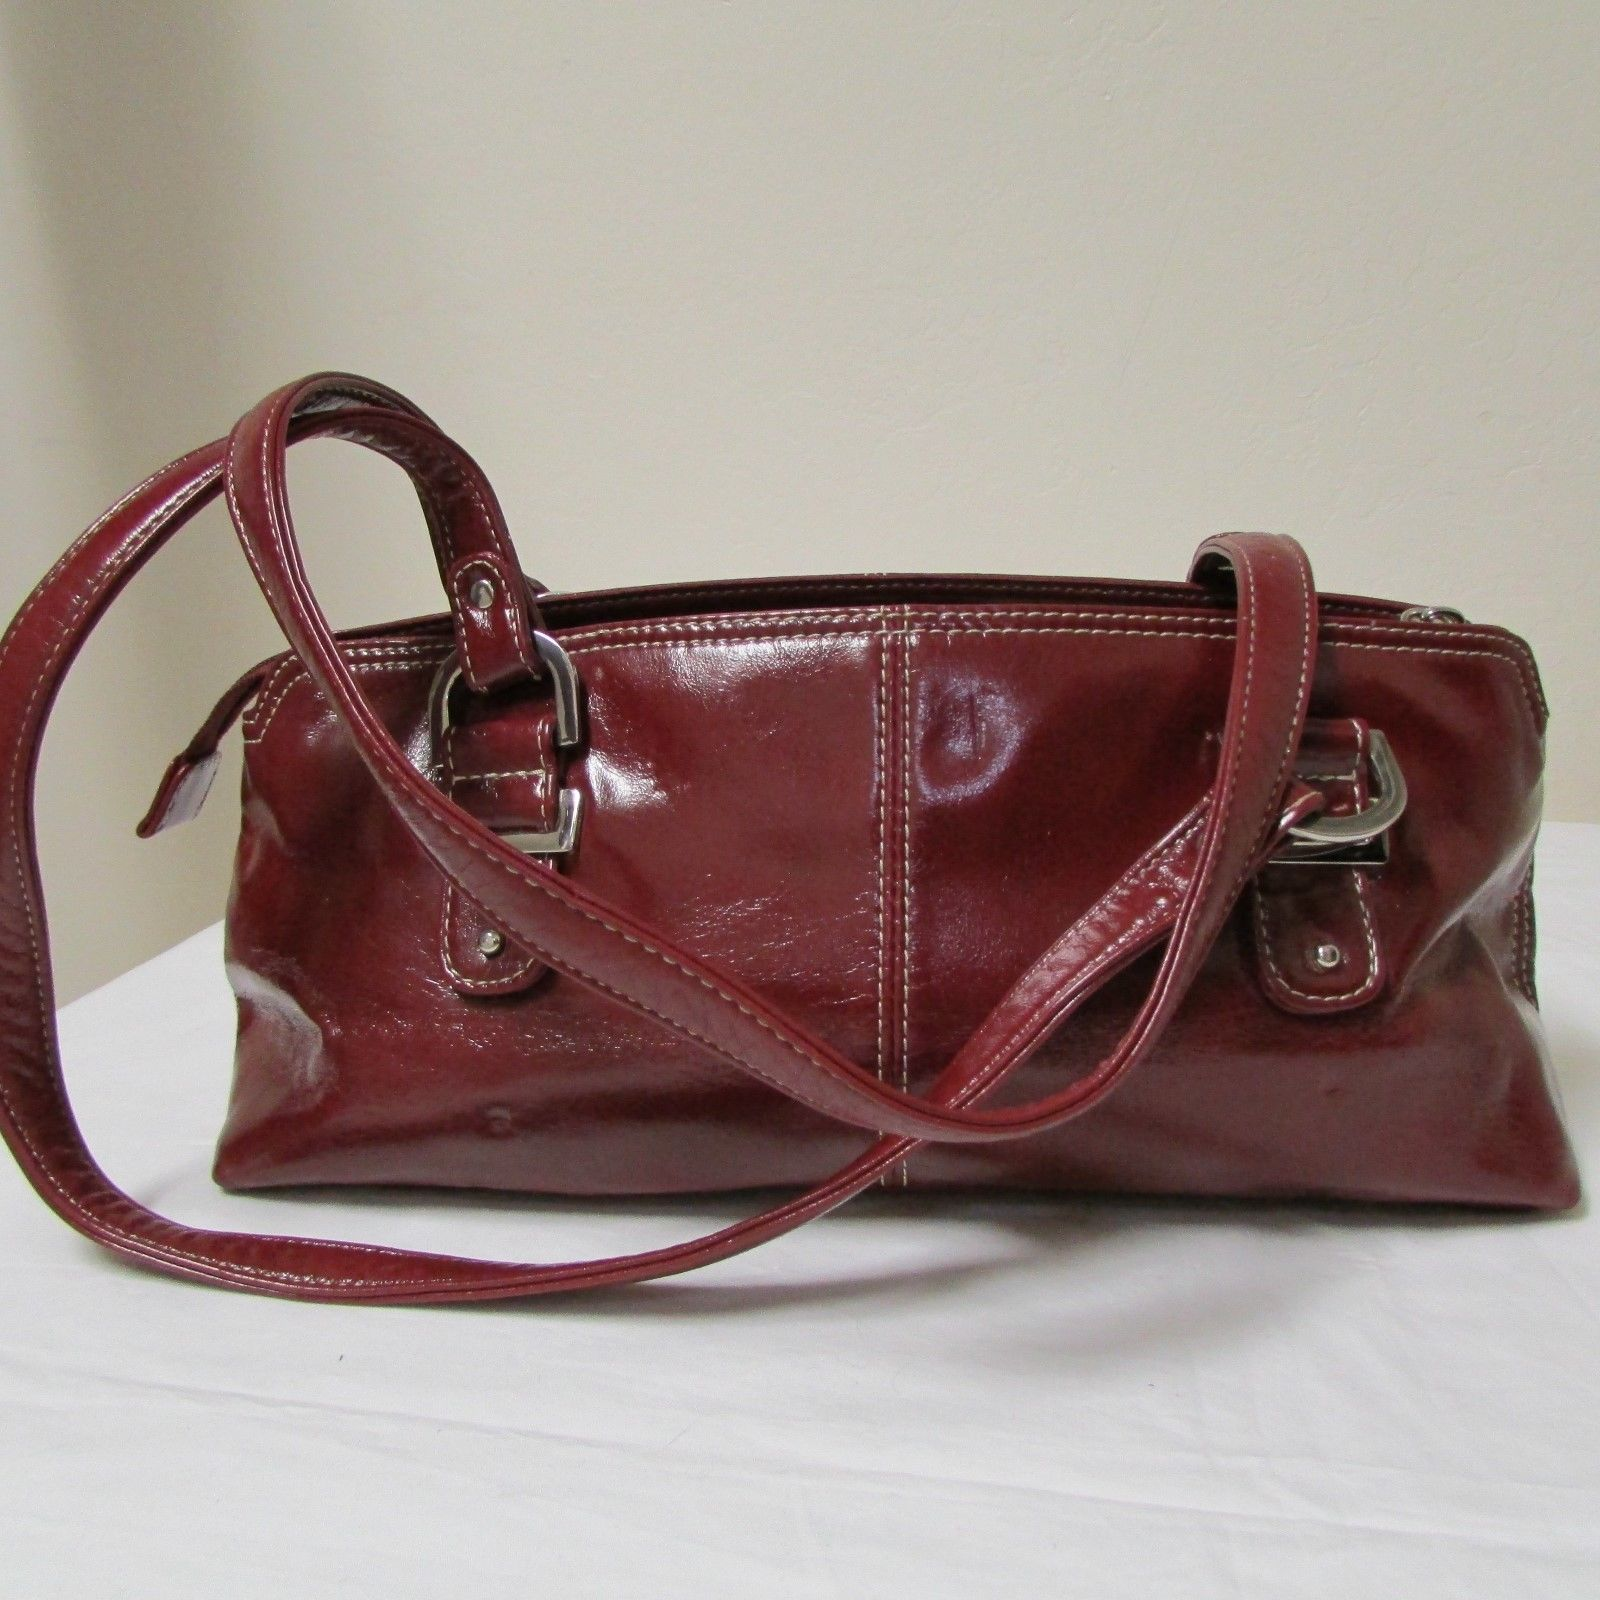 Relic Brand Cranberry Red Faux Leather Shoulder Bag Size Small image 3